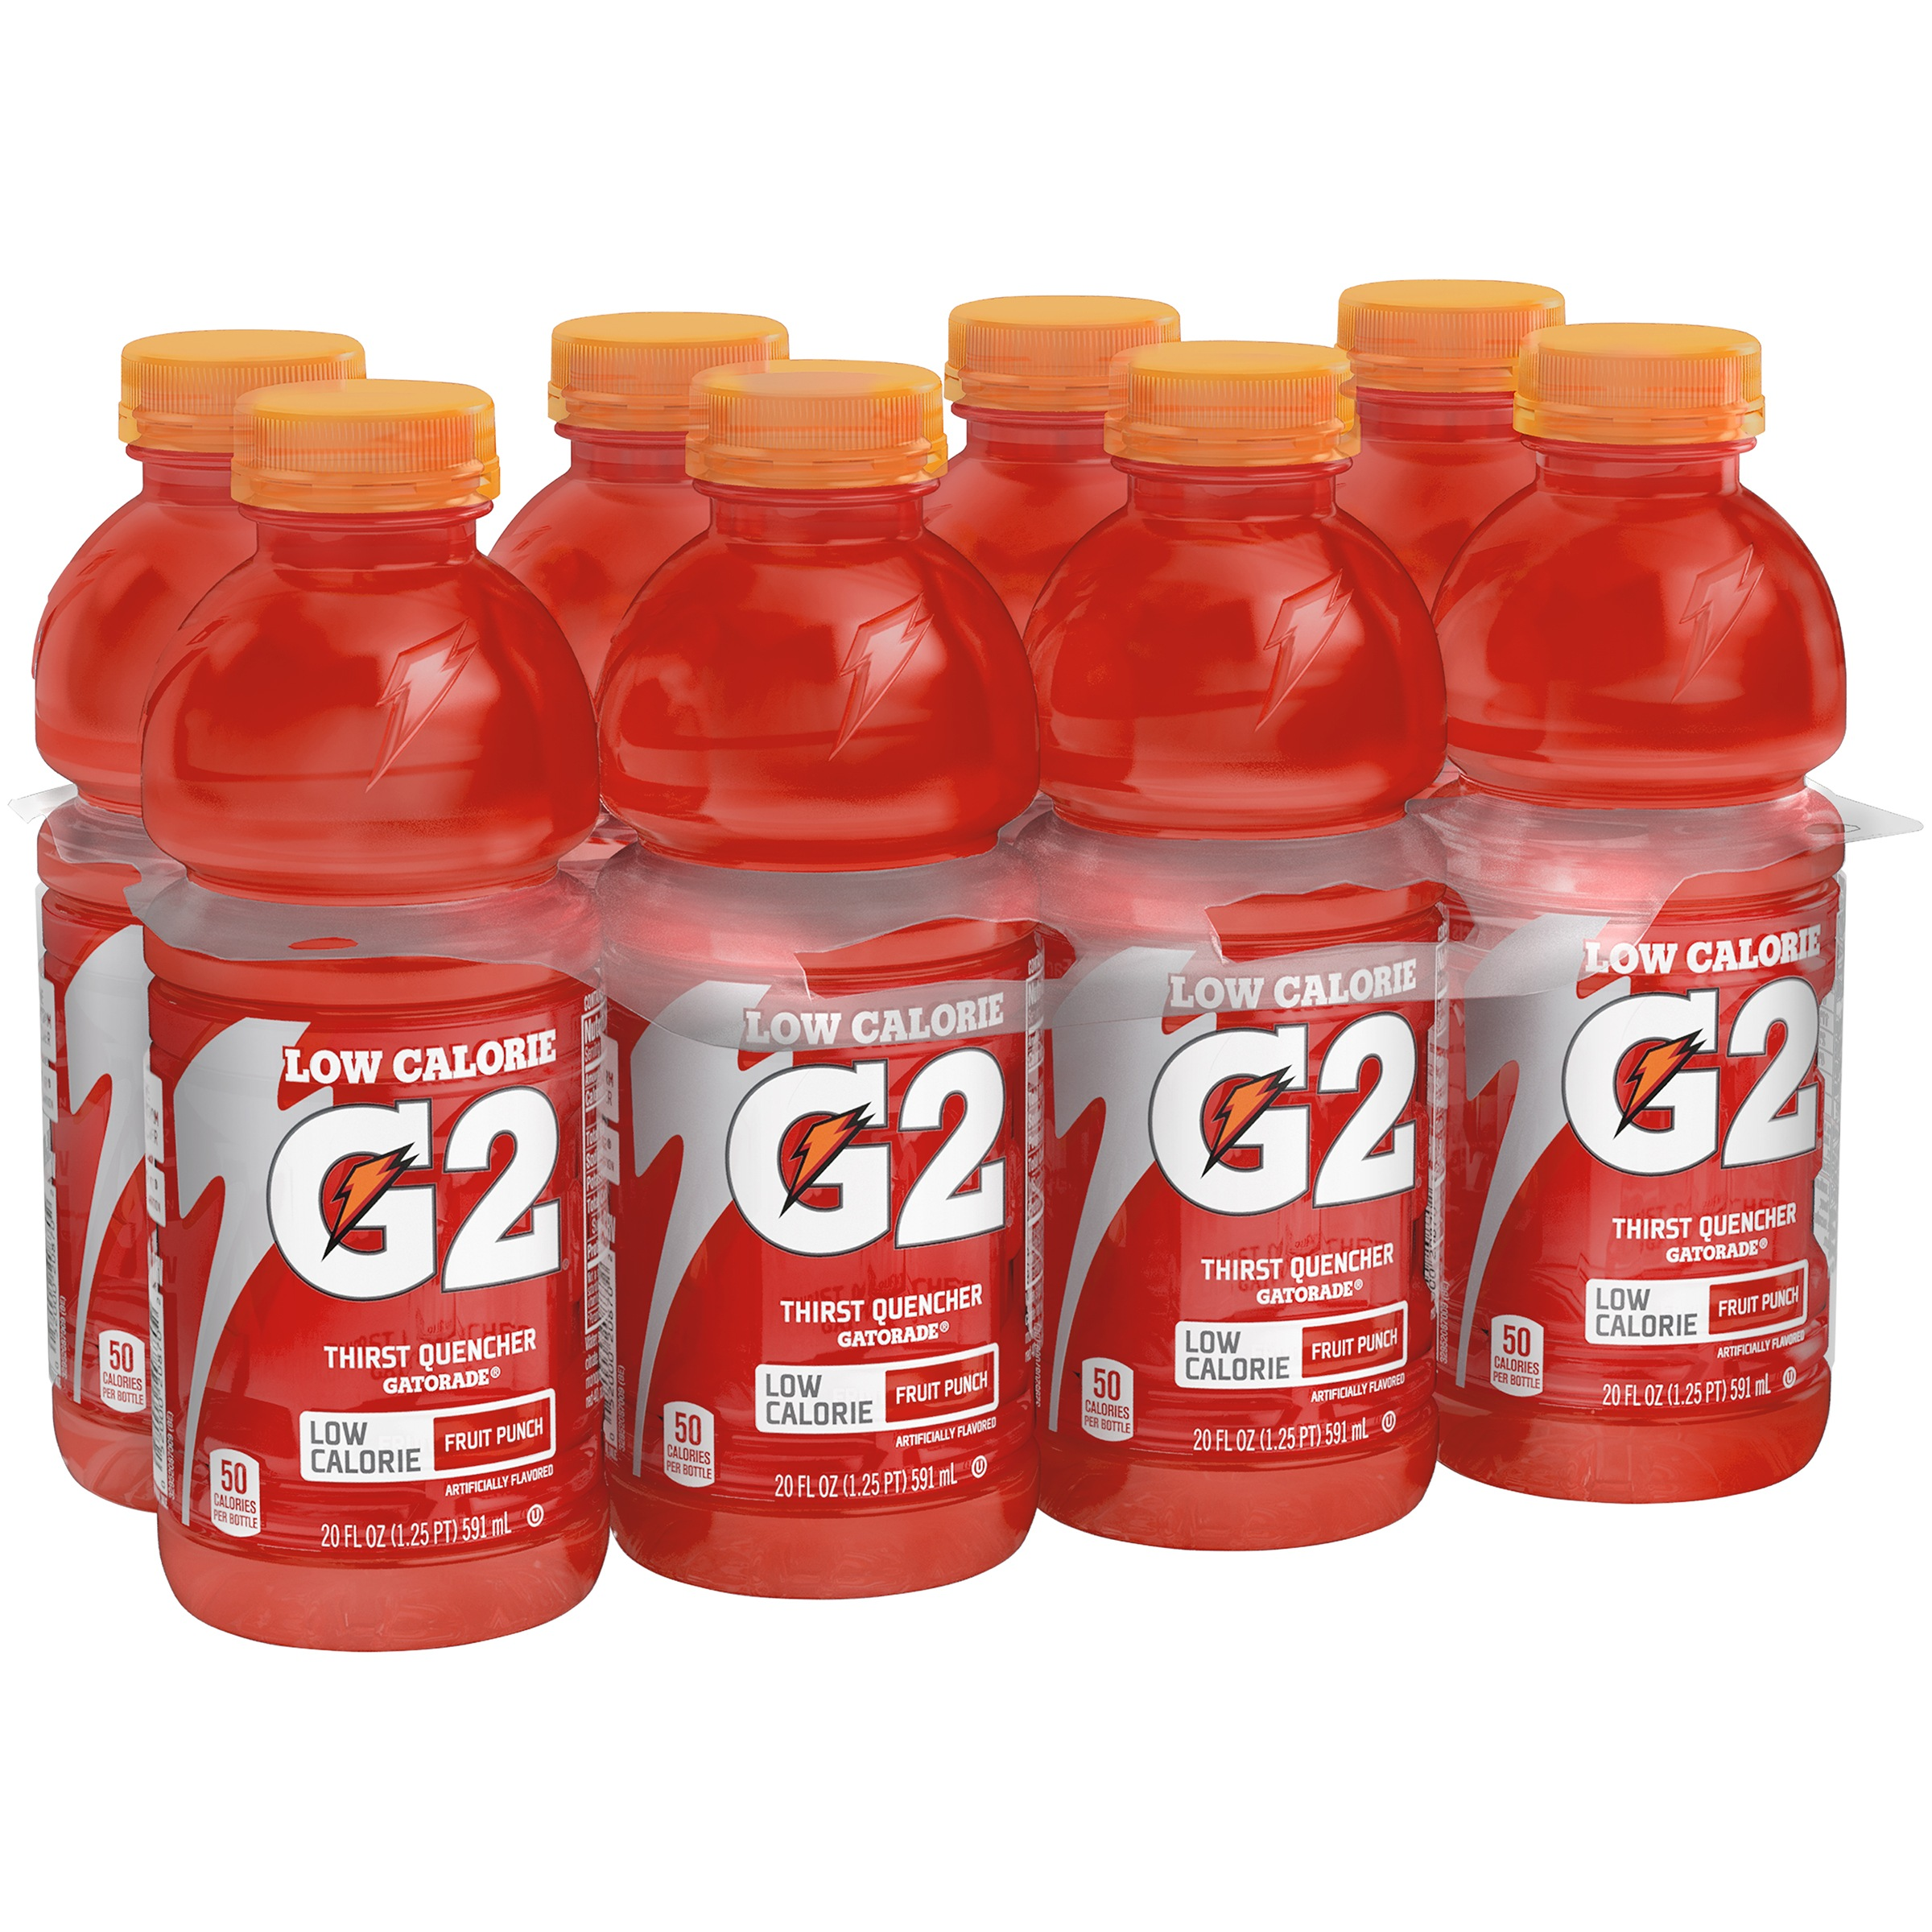 Gatorade G2 Low Calorie Thirst Quencher, Fruit Punch, 8 Count, 20 fl oz Bottles